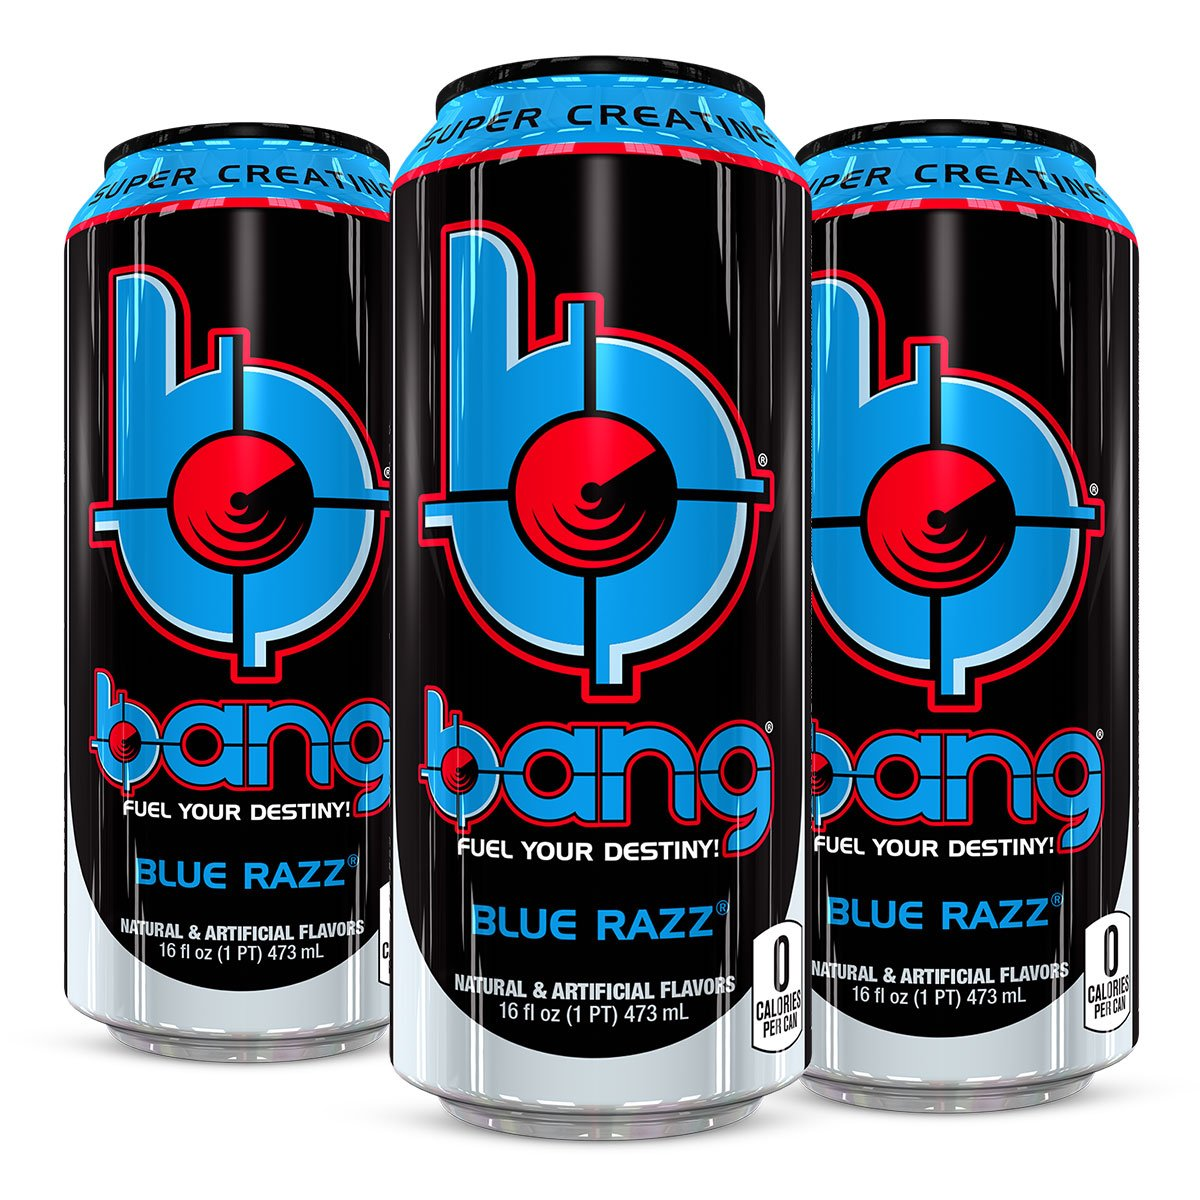 Vpx Bang Energy Drink 12 Pack Brand New Free Shipping